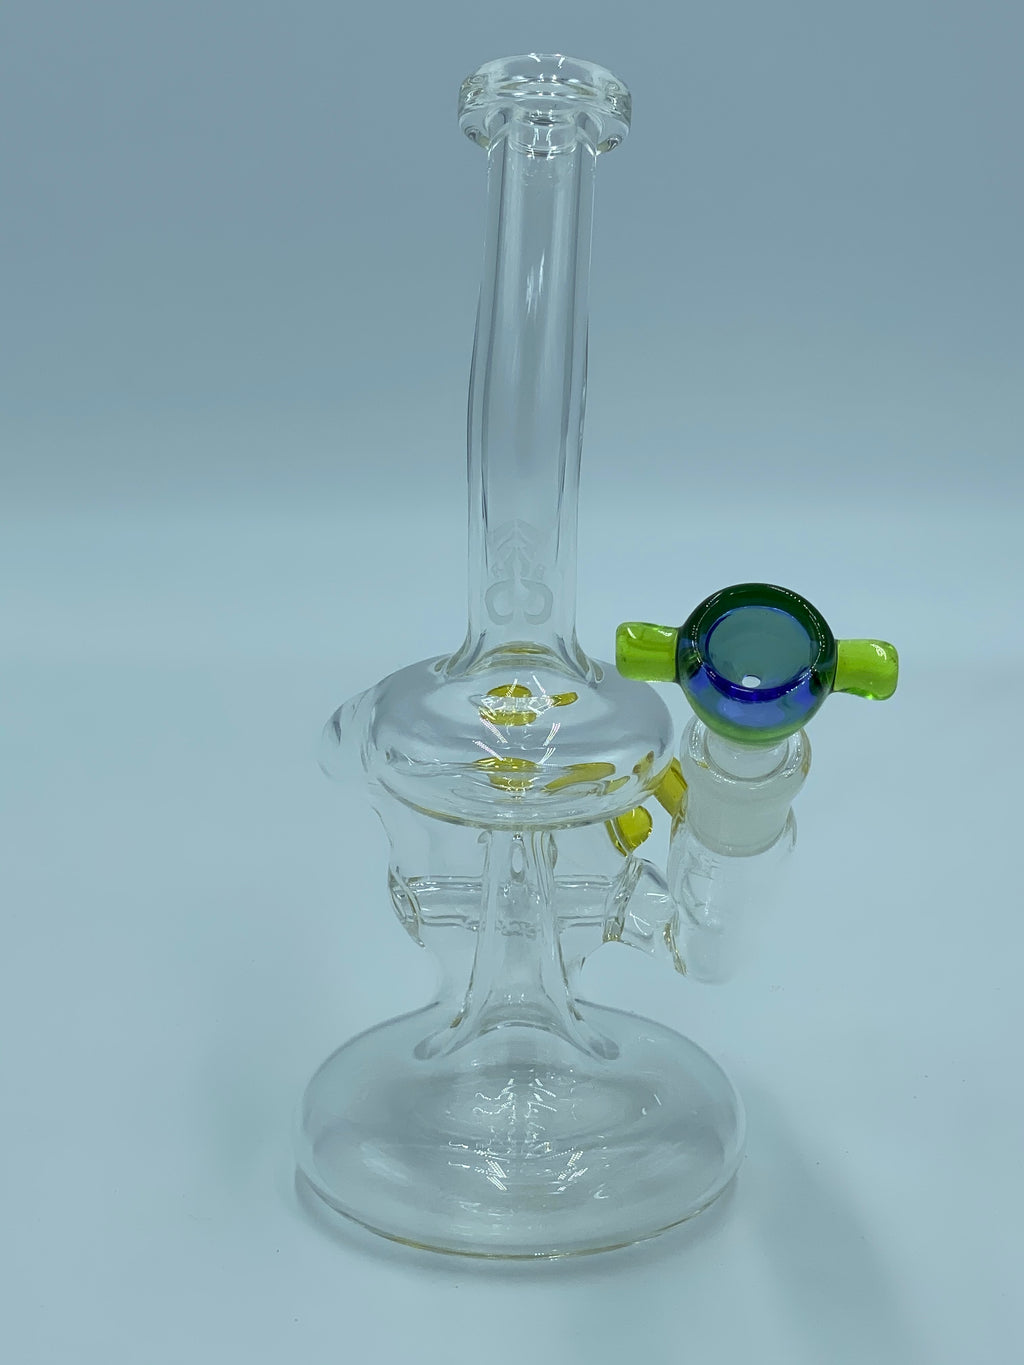 BRIAN RICH RECYCLER RIG - Smoke Country - Land of the artistic glass blown bongs